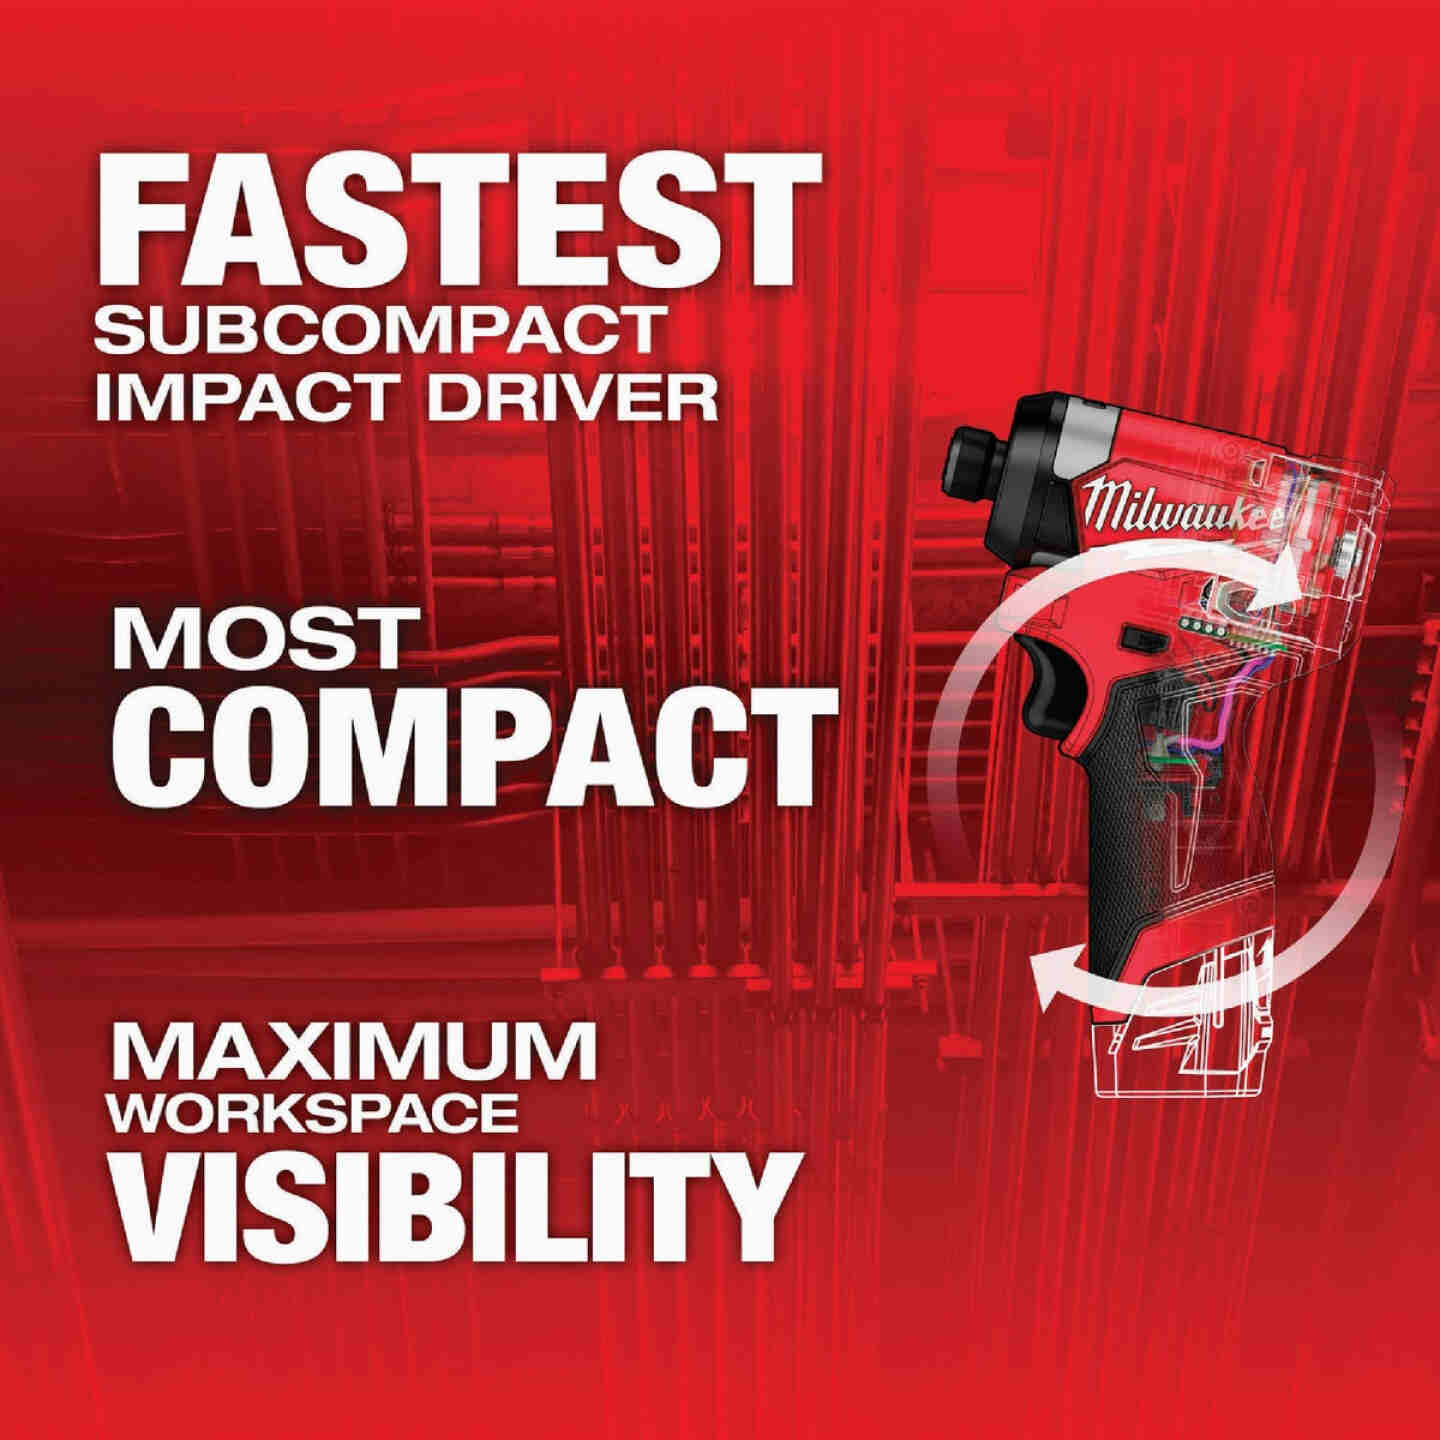 Milwaukee M12 FUEL 12 Volt Lithium-Ion Brushless 1/4 In. Hex Cordless Impact Driver (Bare Tool) Image 2